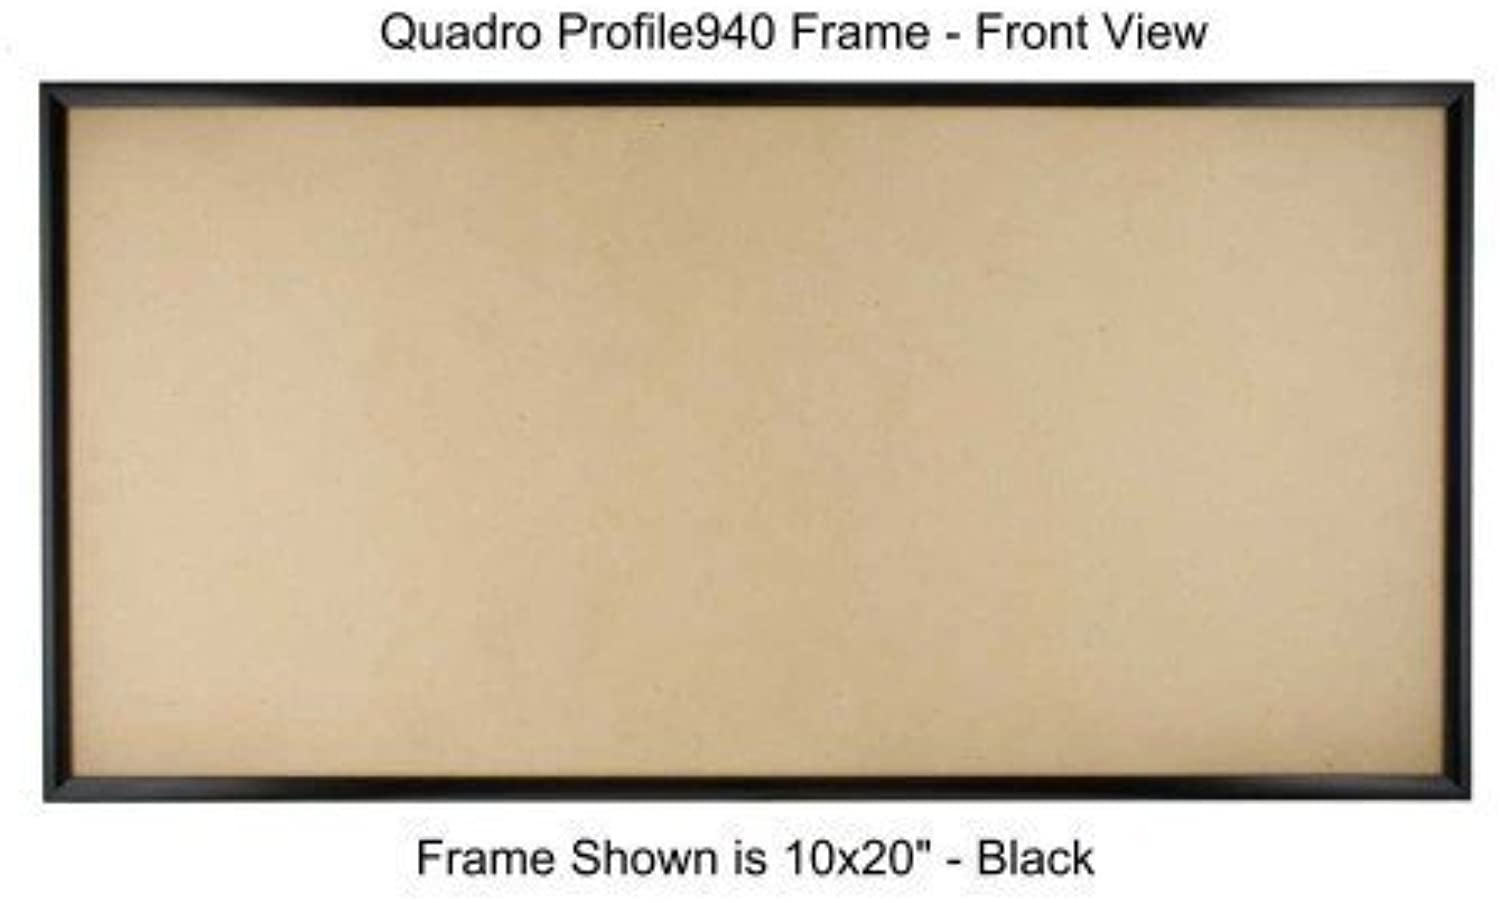 Quadro Frames 11x22 inch Picture Frame, Black, Style P375-3 8 inch Wide Molding, Box of 4